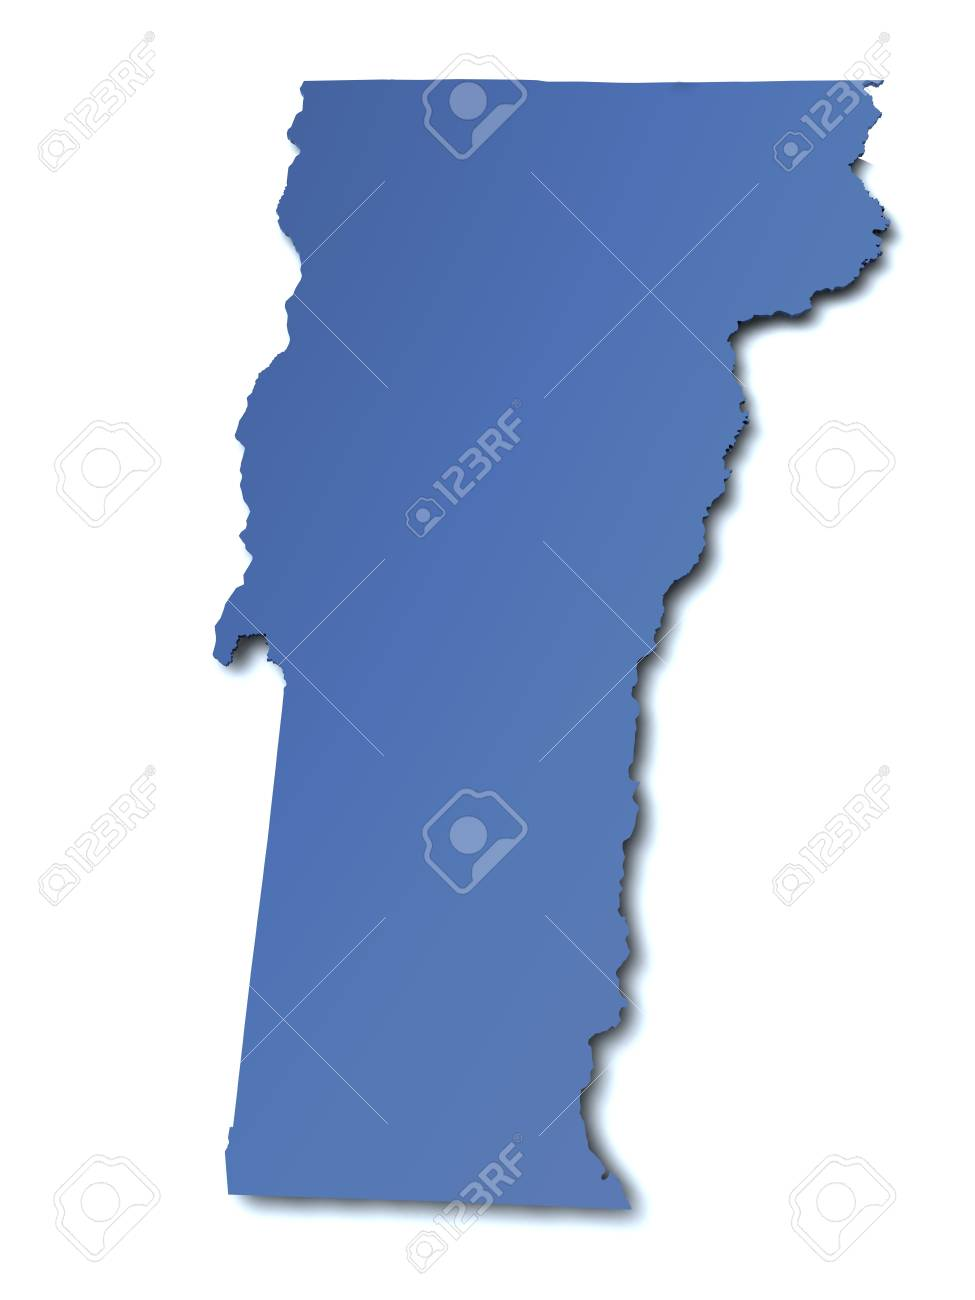 Map Of Vermont USA Stock Photo Picture And Royalty Free Image - Usa maps vermont